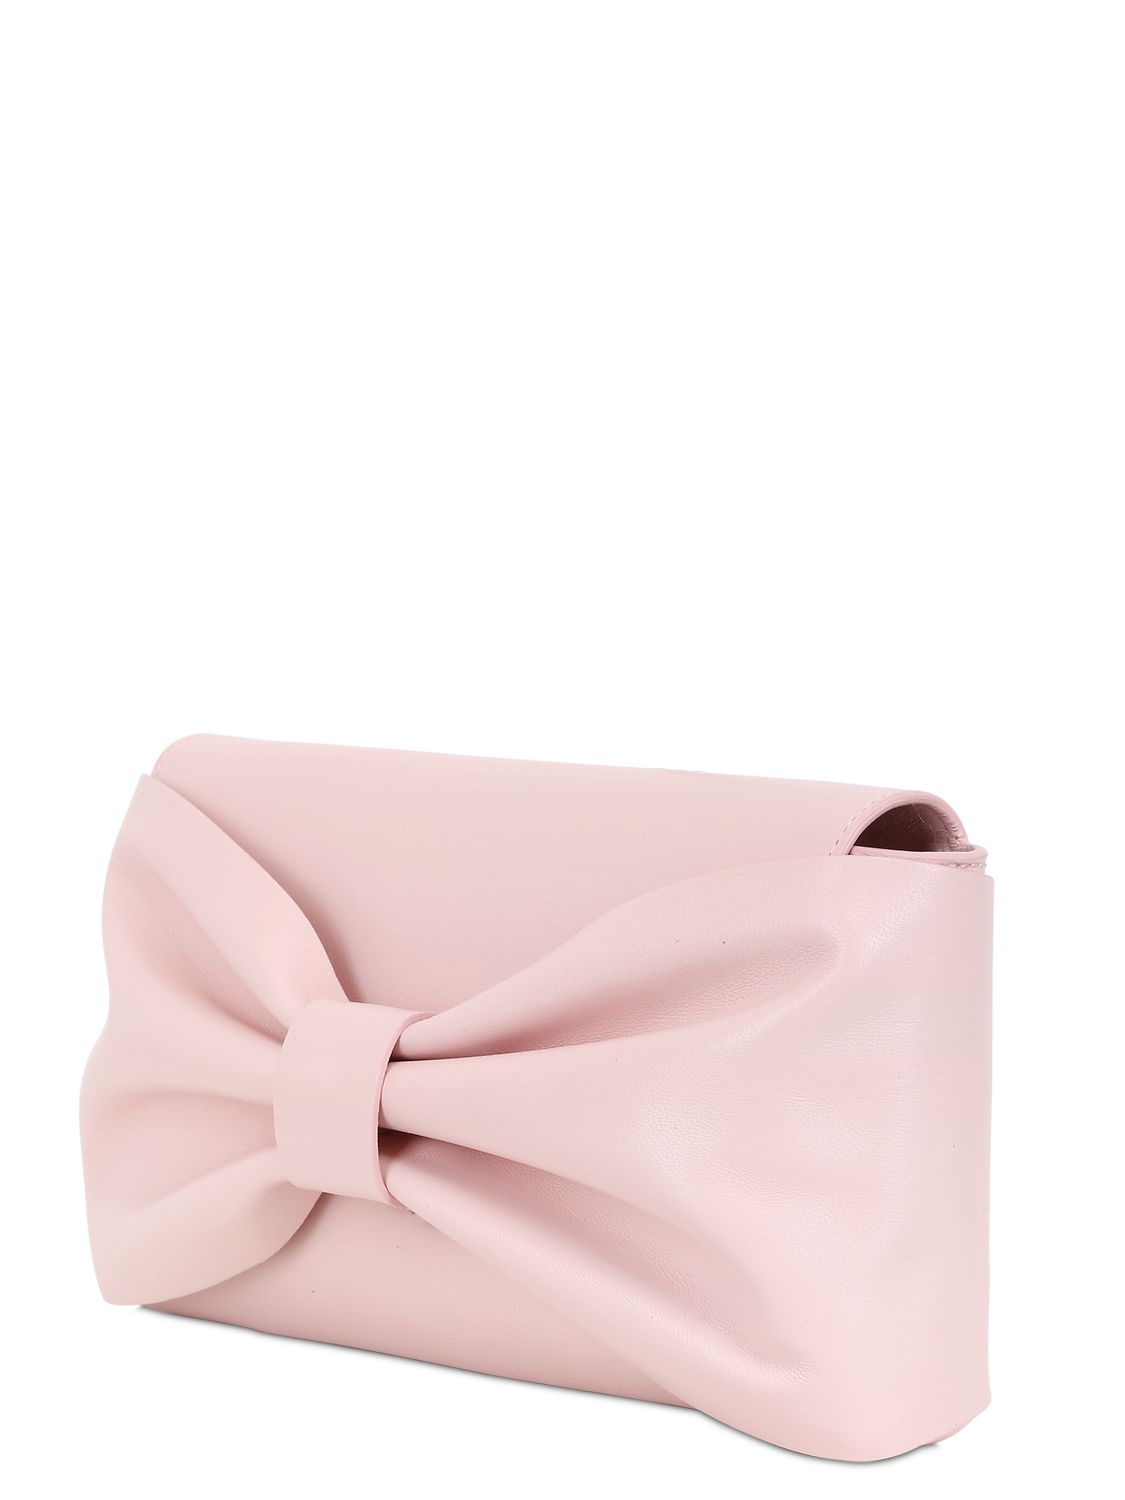 RED Valentino Nappa Leather Bow Clutch Bag in Pink - Lyst 70c1368619fa